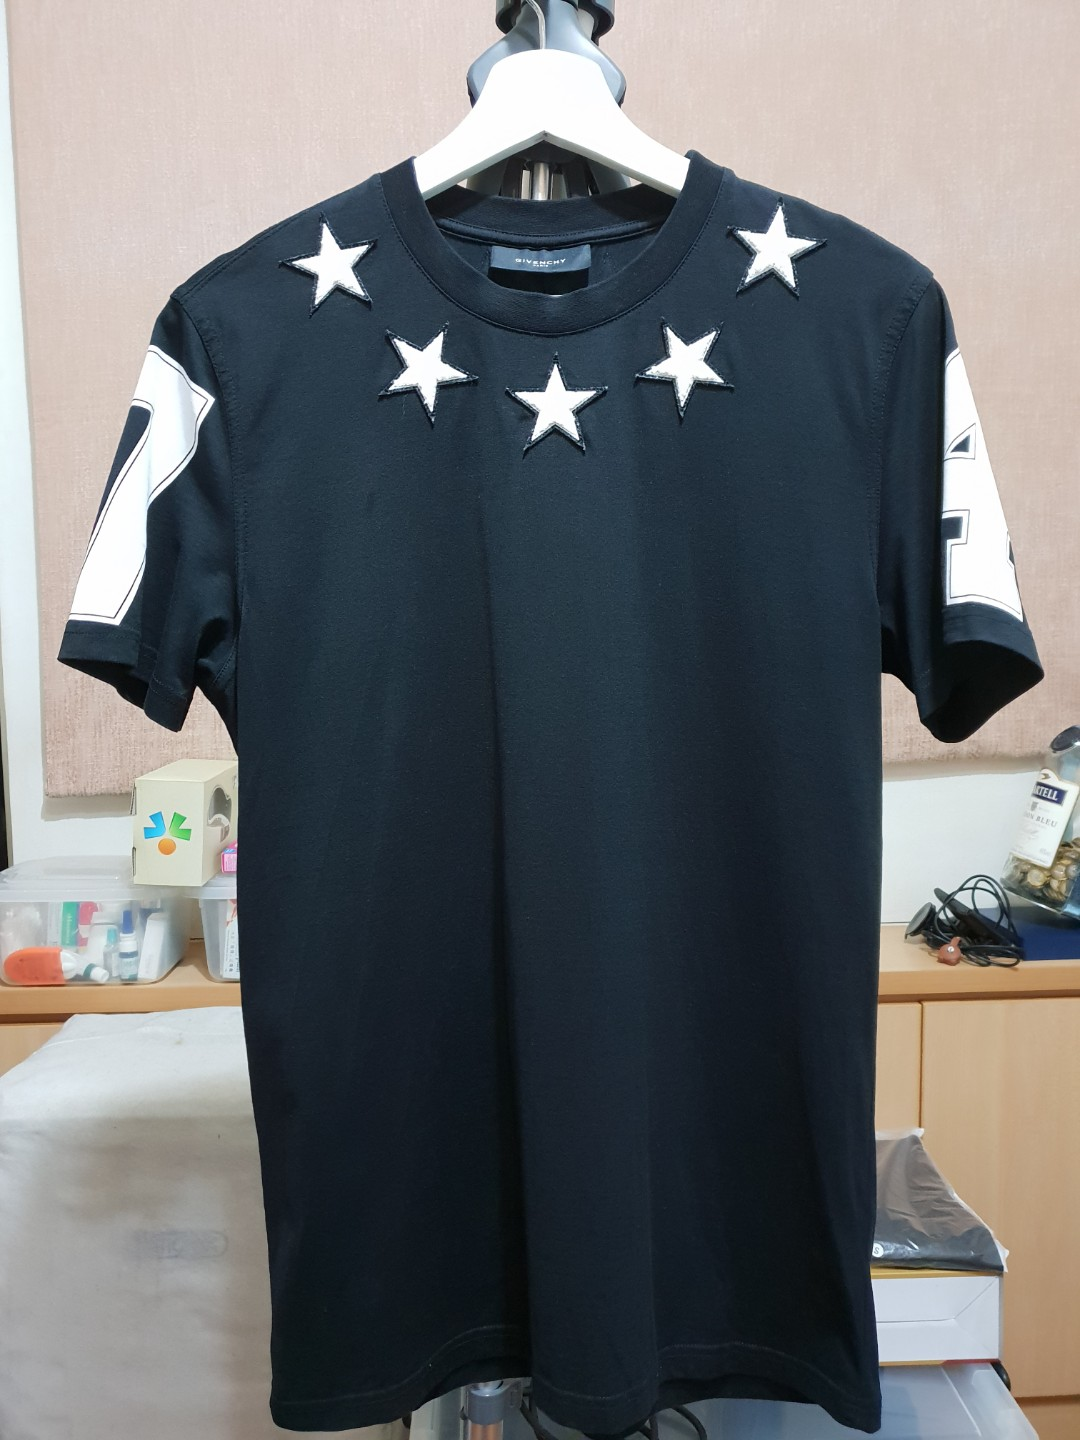 e5428772 Givenchy Stars 74 Tee, Men's Fashion, Clothes, Tops on Carousell